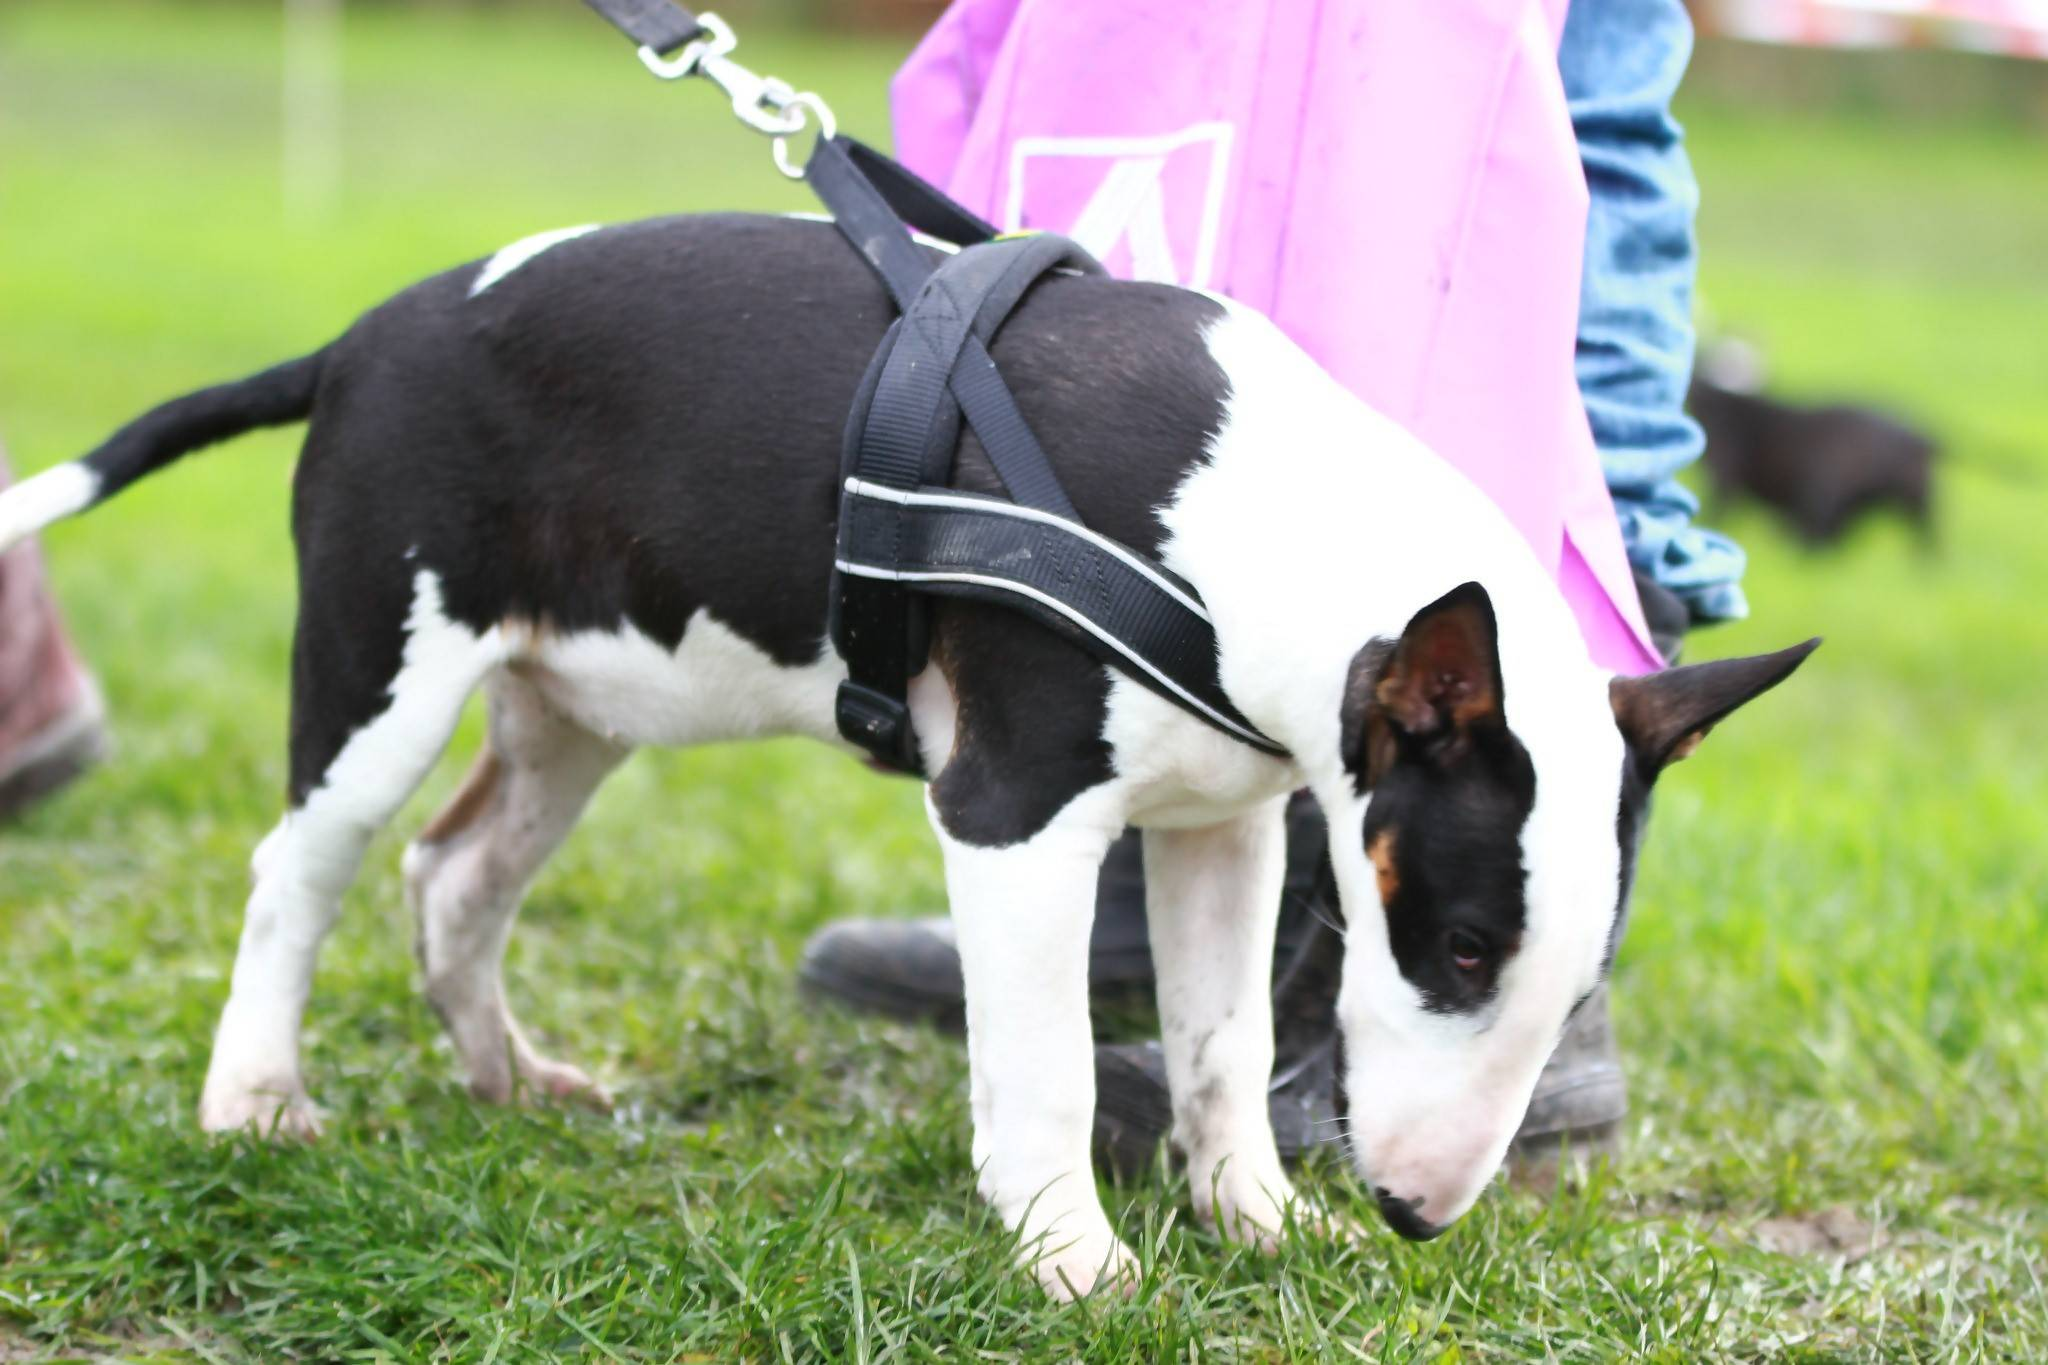 A bull terrier wearing a standard dog harness